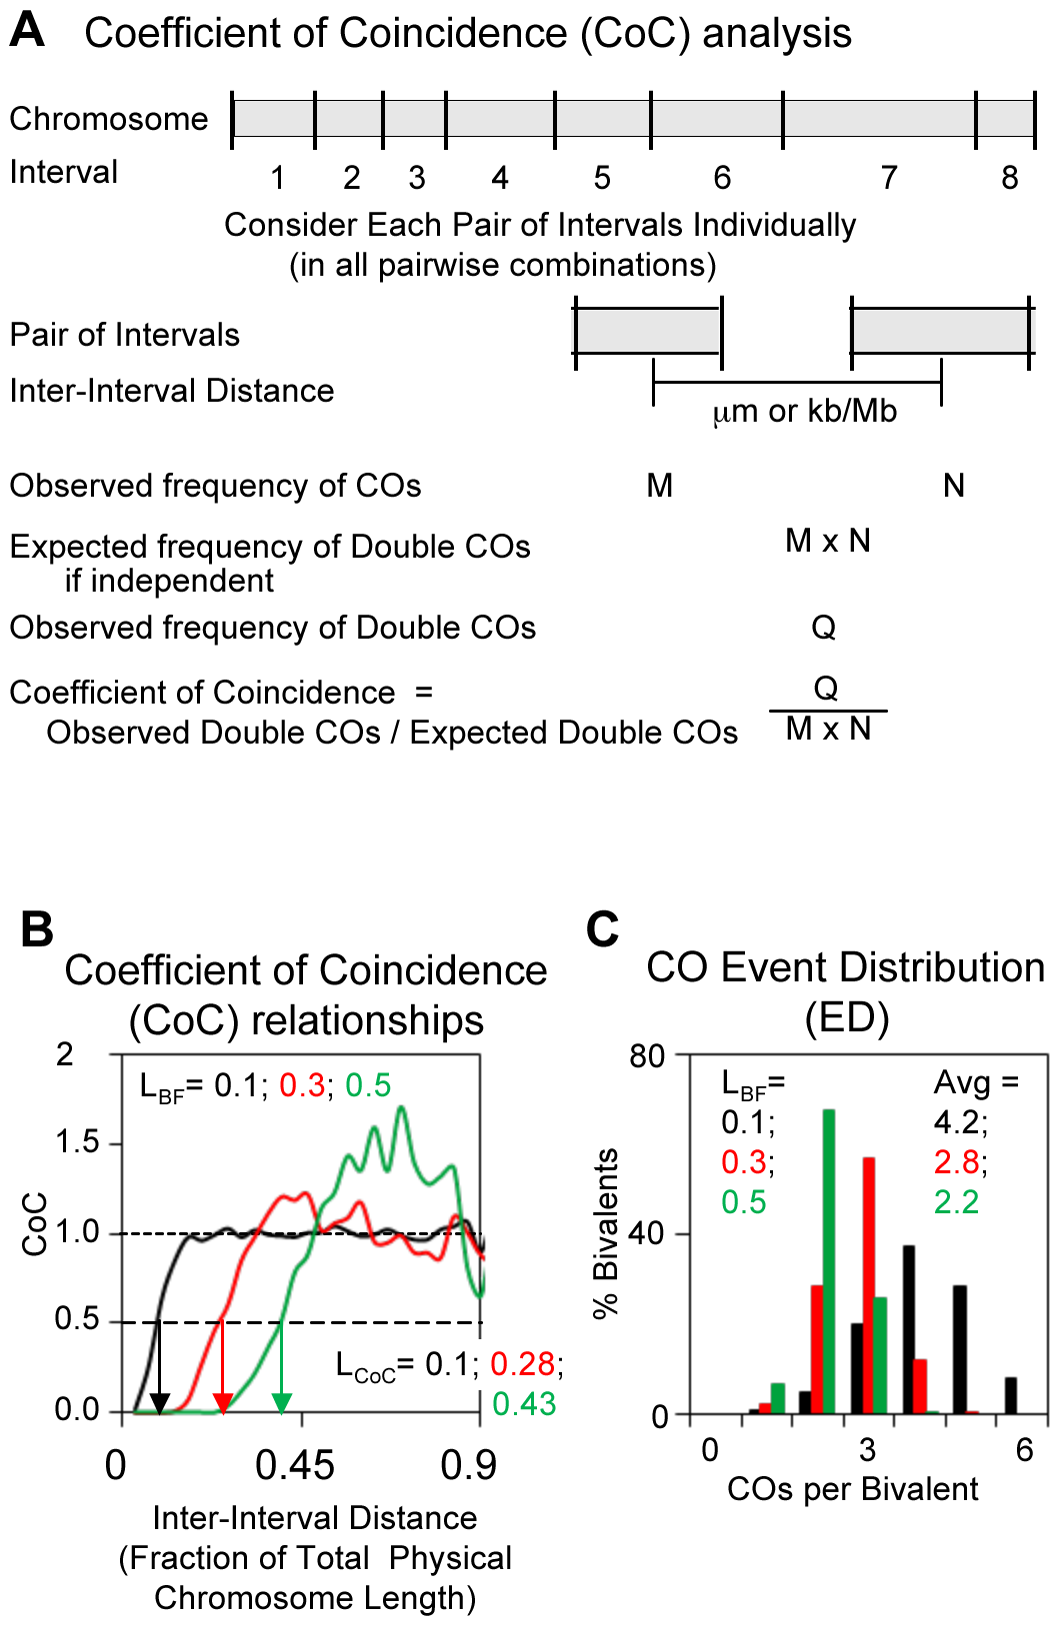 Descriptors of CO patterns: Coefficient of Coincidence (CoC) and Event Distribution (ED).